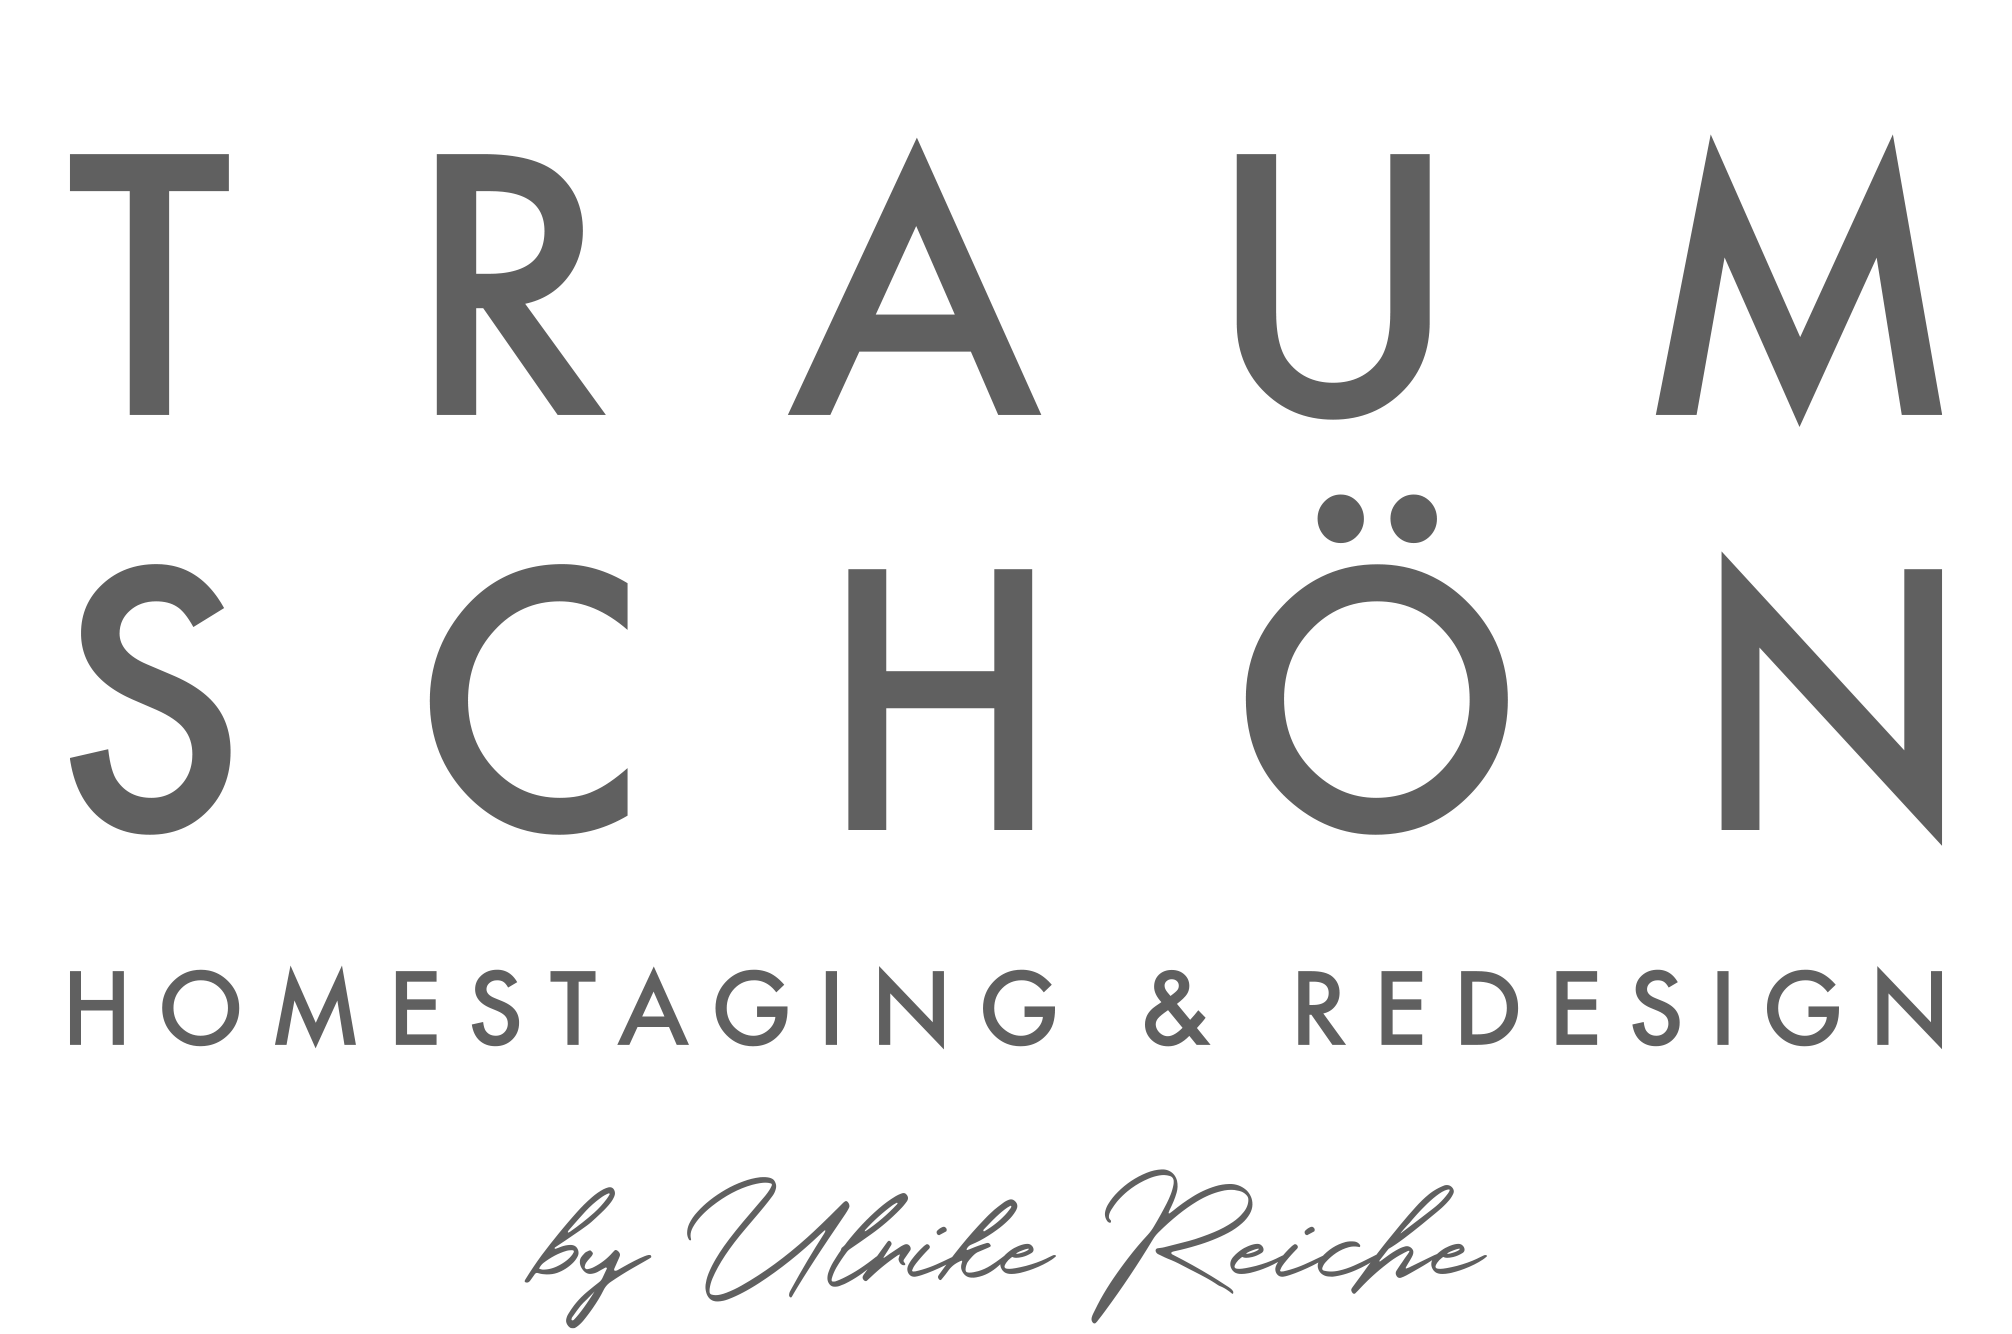 Traumschön Home Staging Logo